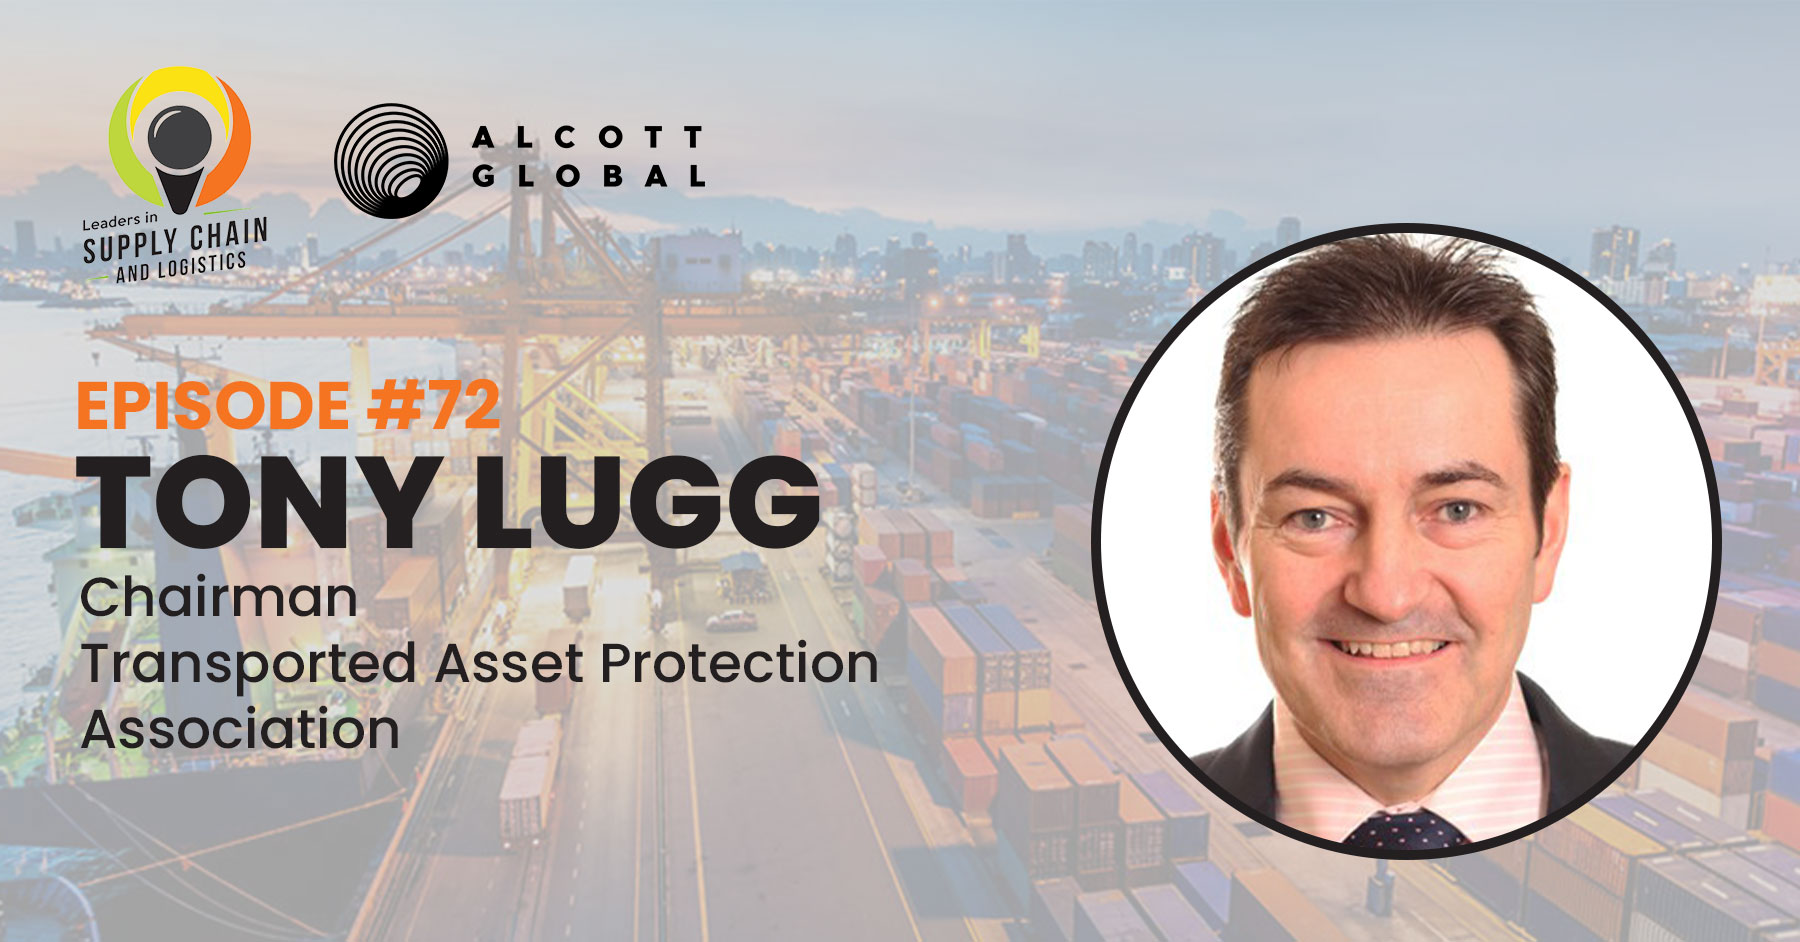 #72: Tony Lugg Chairman of Transported Asset Protection Association Featured Image